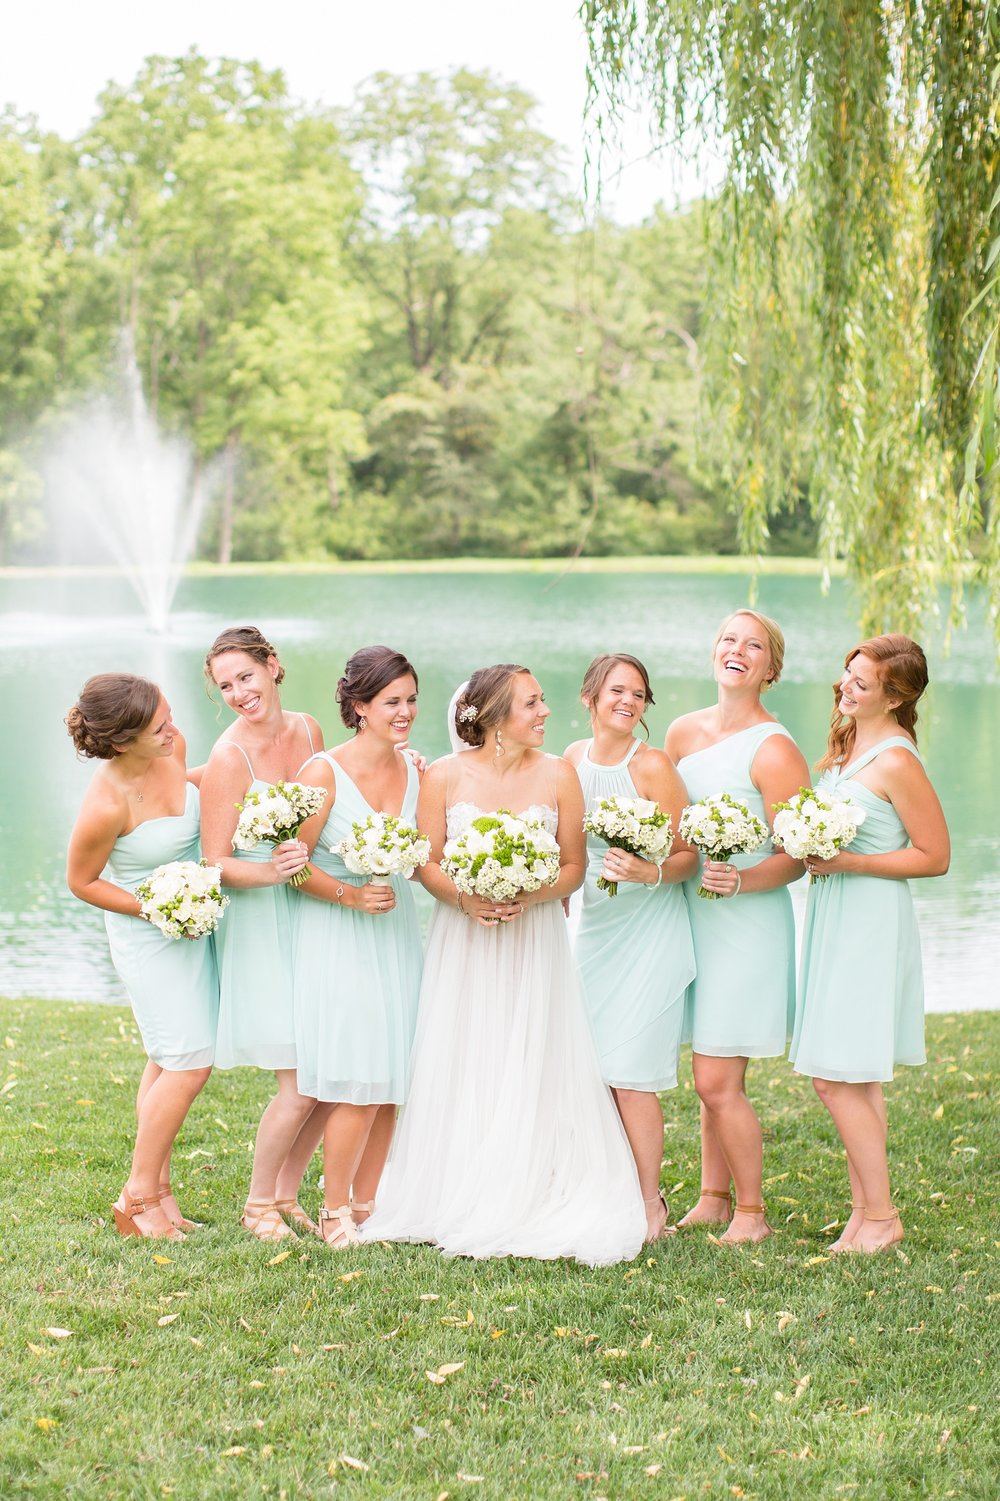 Herndon 2-Bridal Party-223_anna grace photography baltimore maryland wedding photographer pond view farm photo.jpg